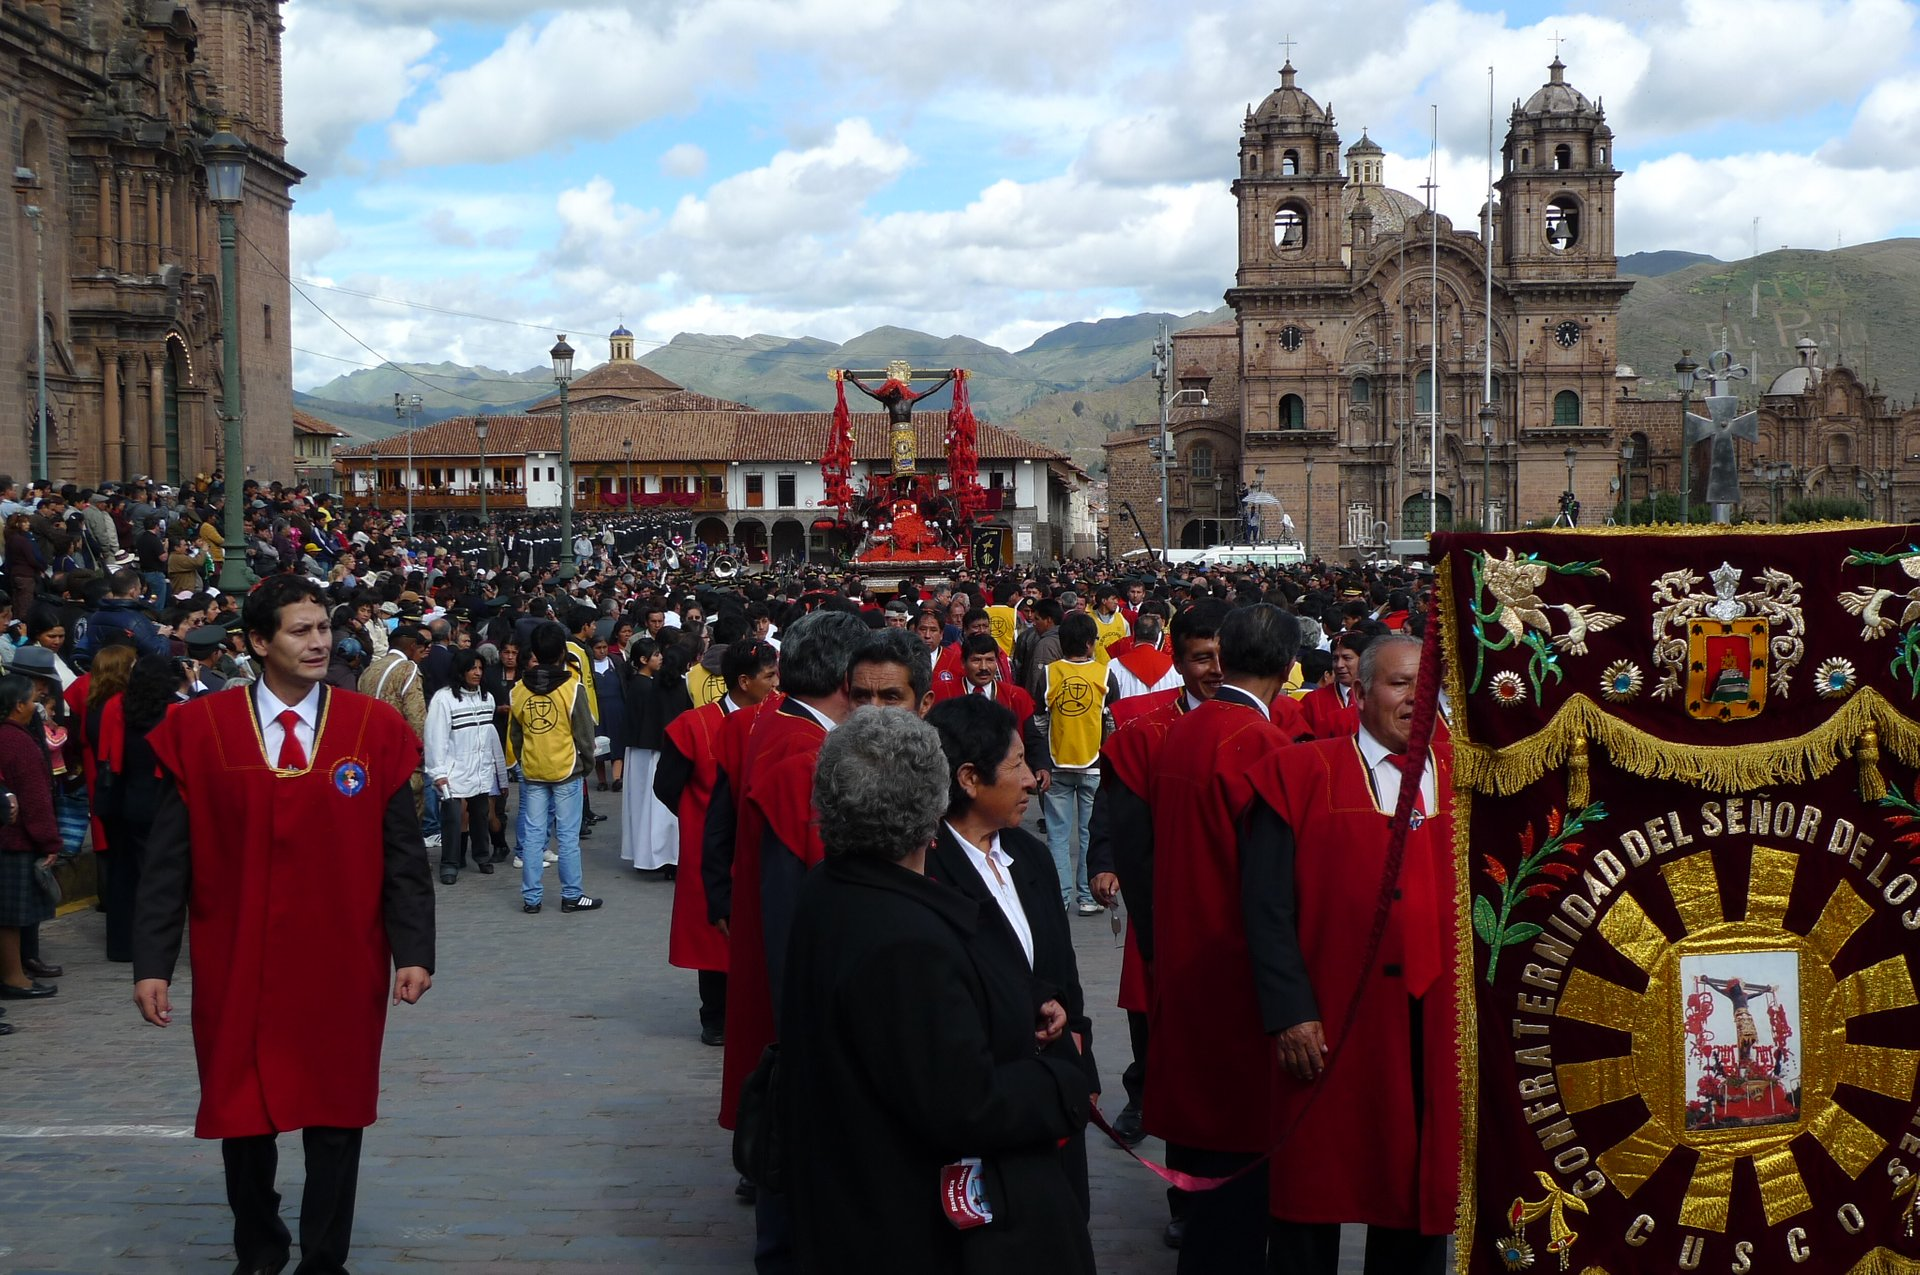 Procession of Senor de Los Temblores - Cusco, Peru 2019